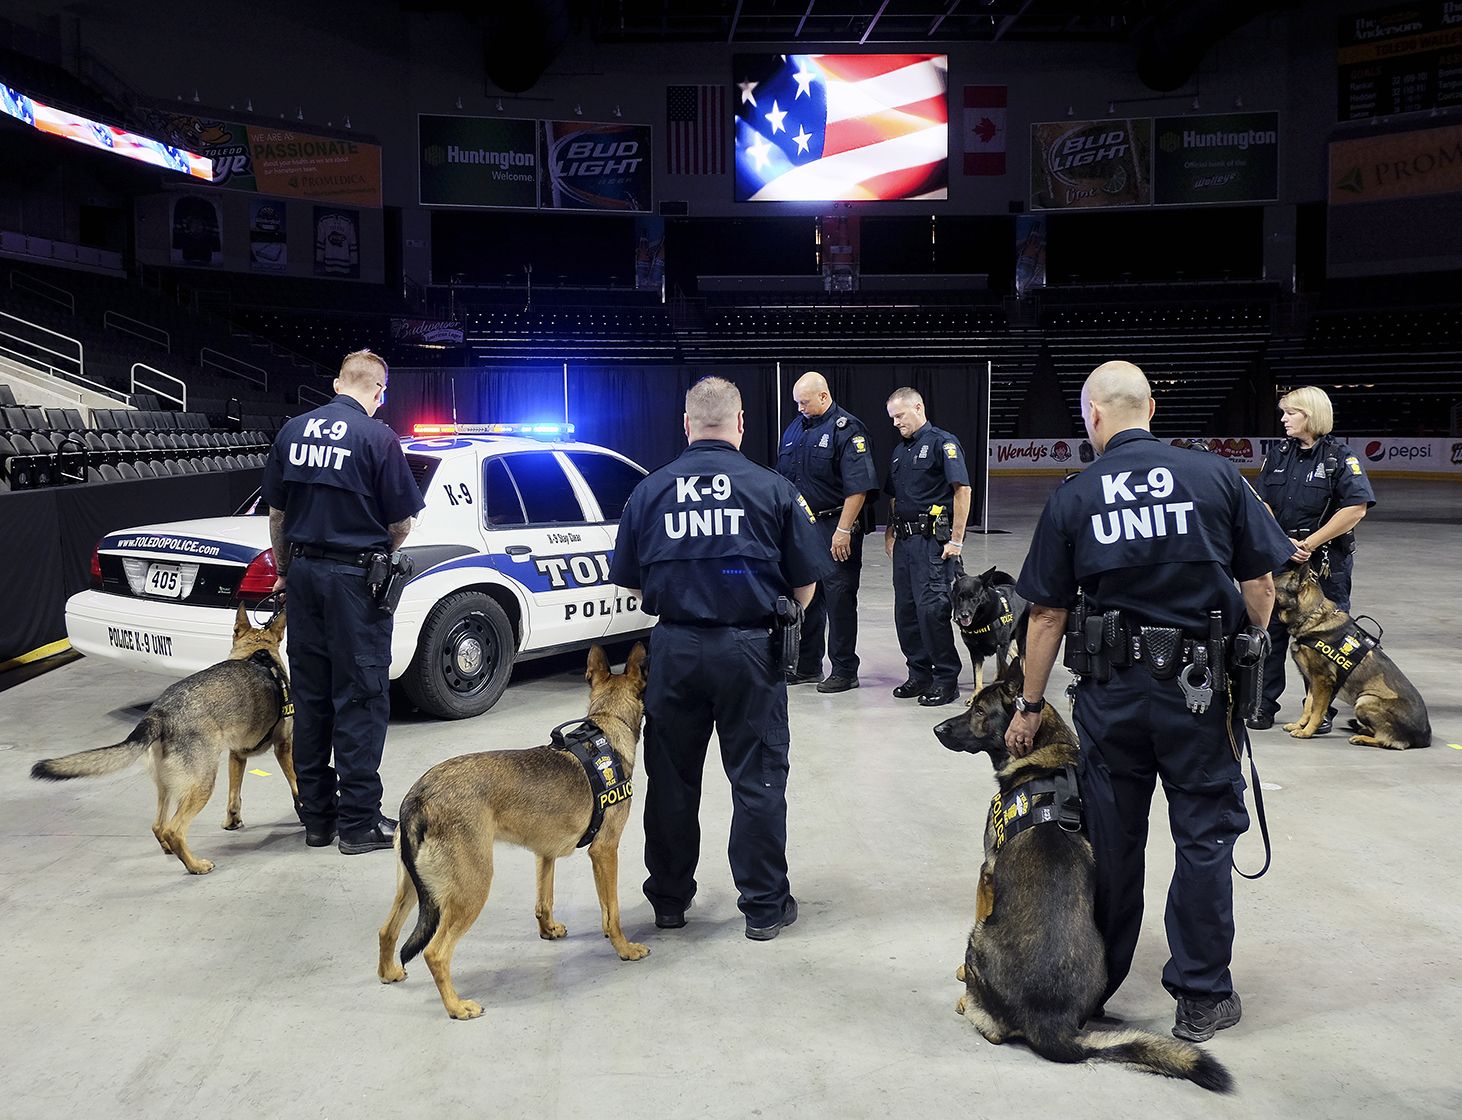 Donations Give Toledo Police Dogs Protective Vests The Blade